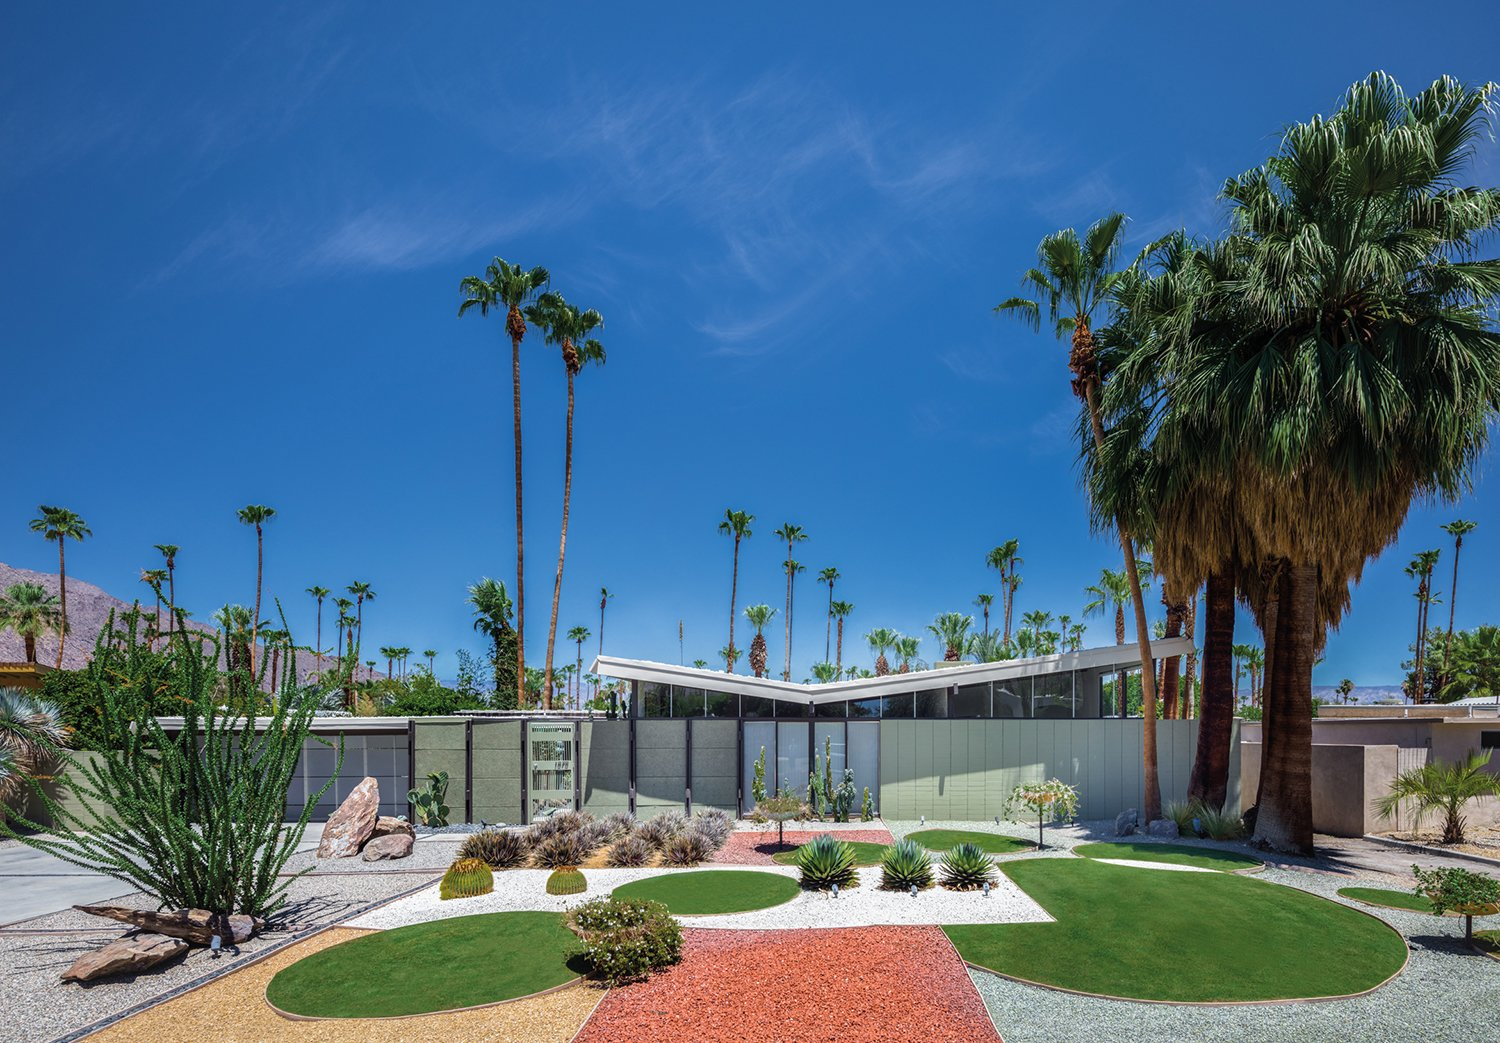 Exterior, Mid-Century Building Type, House Building Type, and Butterfly RoofLine Krisel was also known for his boldly modern approach to landscape. The Menrad residence, shown here, features a distinct geometric design. The architect, working in the harsh Palm Springs climate, relied on hardscape elements—setting a precedent for drought-tolerant landscape design.  A Crash Course in Palm Springs Architecture from Midcentury Lovers: You Can Thank This Architect for Transforming Palm Springs Into a Modernist Hotbed